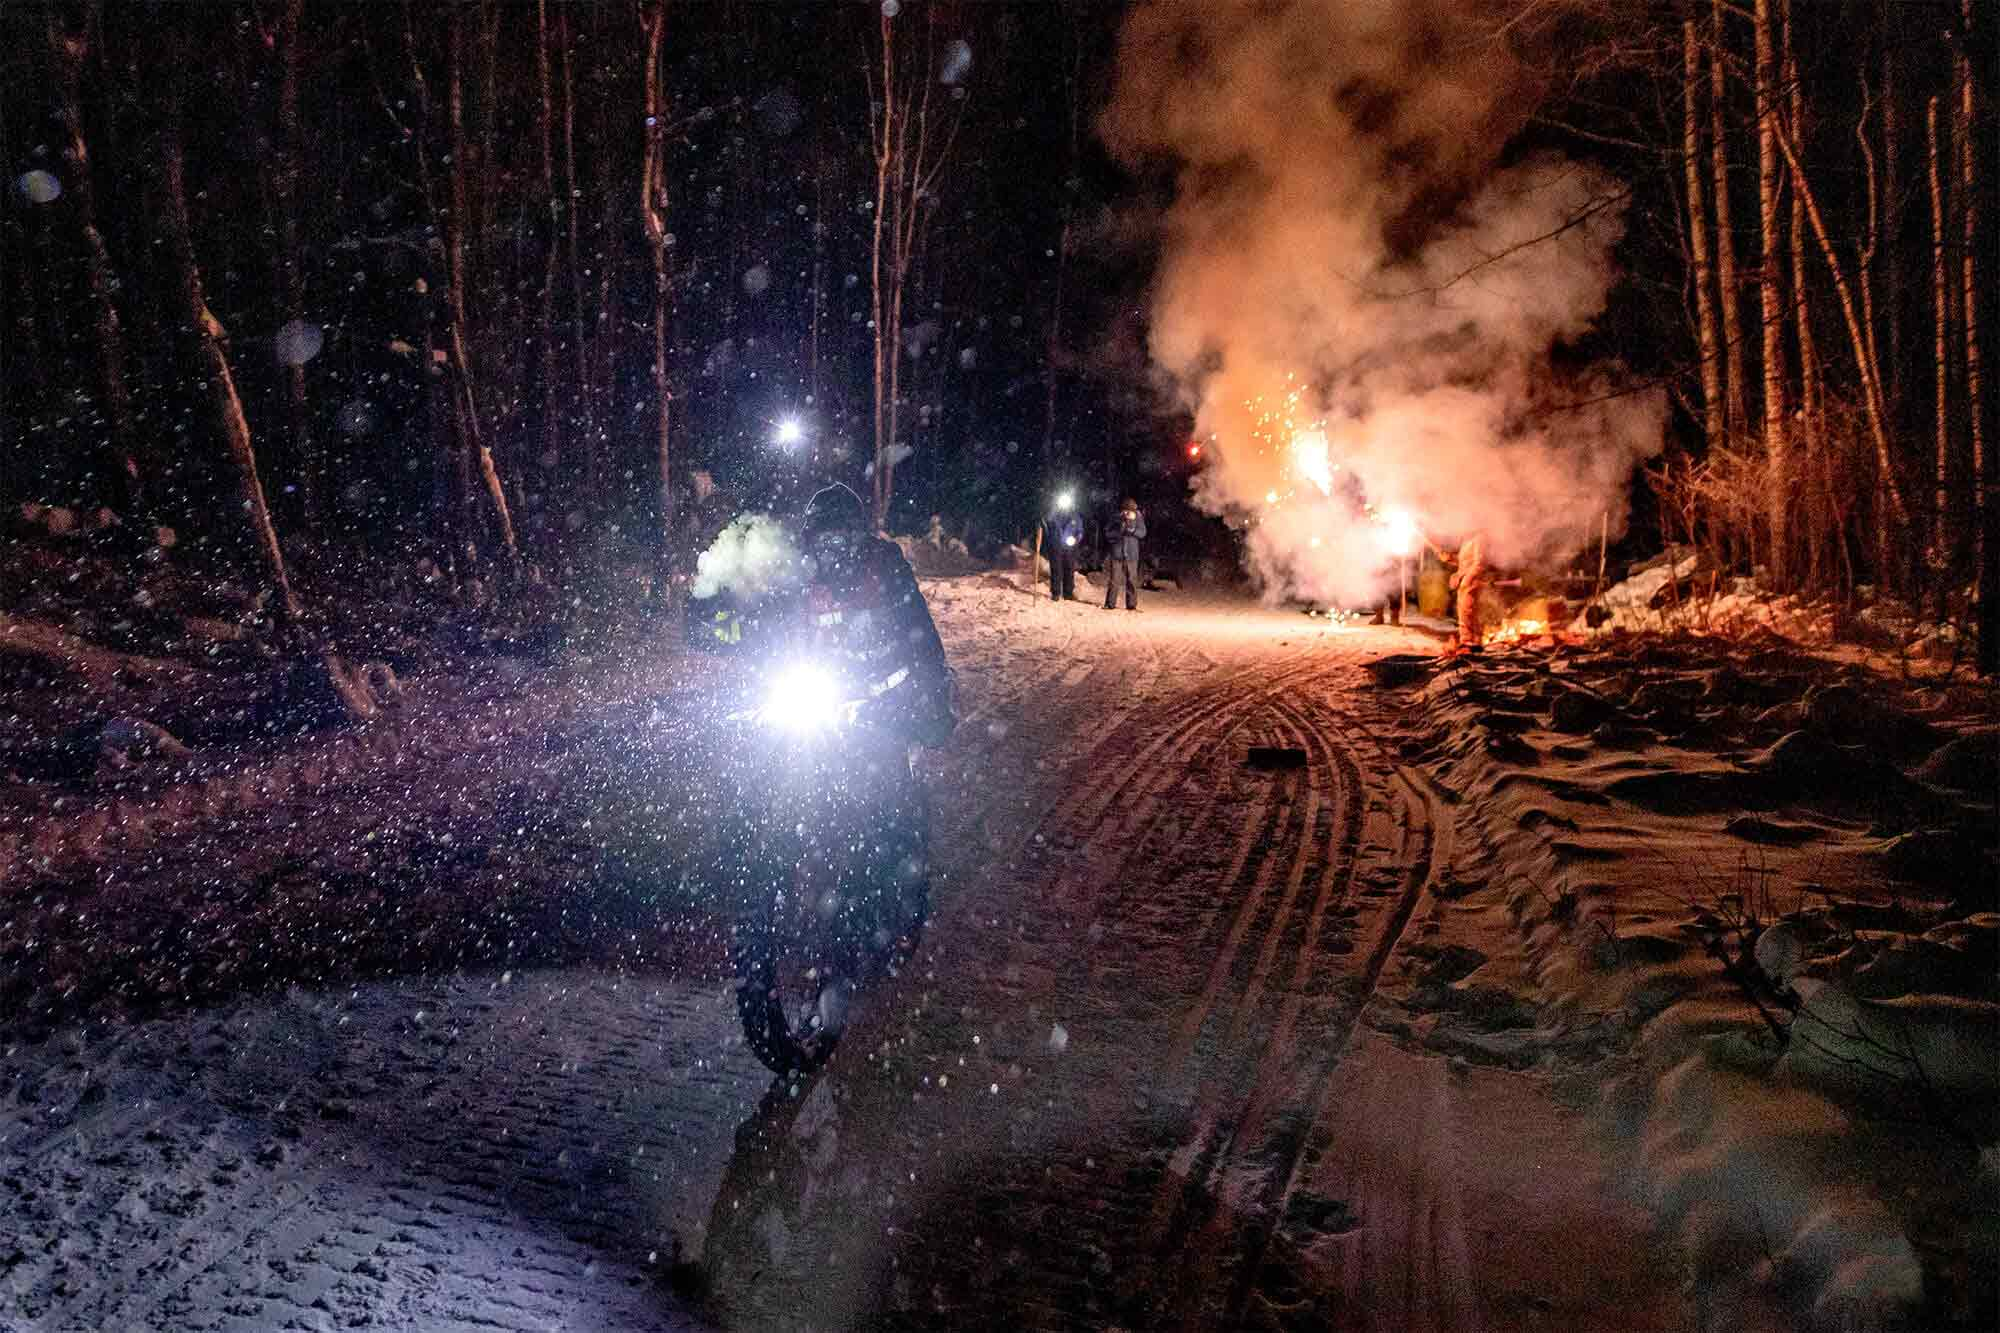 Cyclist riding a bike with a headlight, in the snow at night with fireworks exploding on the ground behind